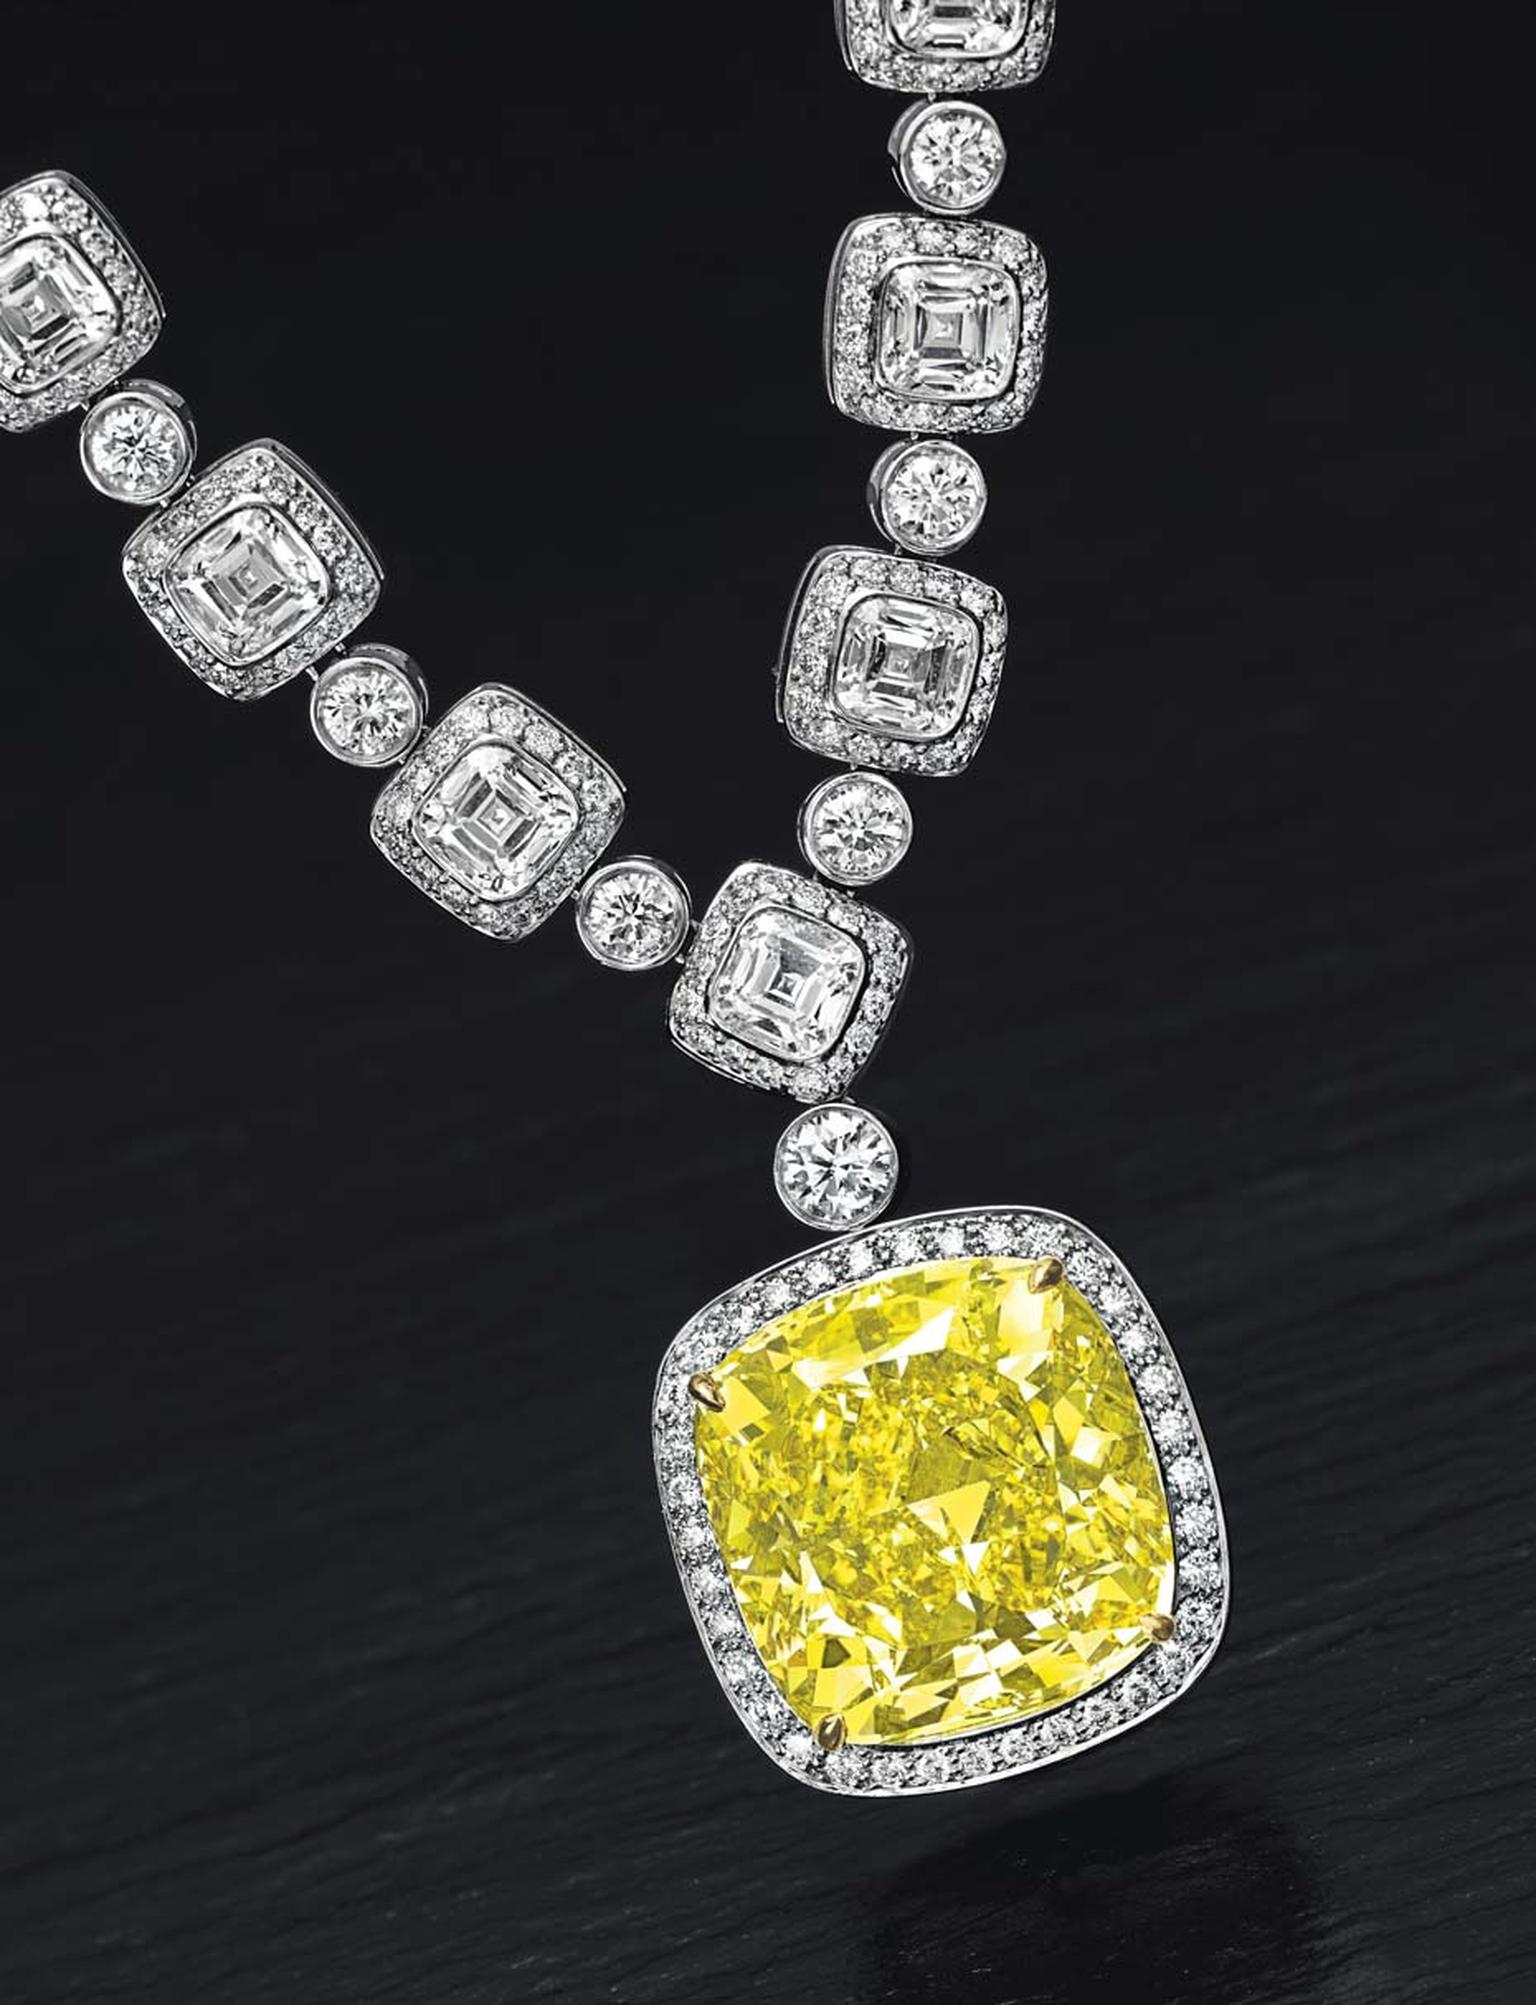 Lot 211, an important coloured diamond and diamond pendant necklace by Tiffany & Co in platinum and gold, set with a modified cushion-cut fancy vivid yellow diamond weighing approximately 20.34ct (estimate: US$1-1.5 million)